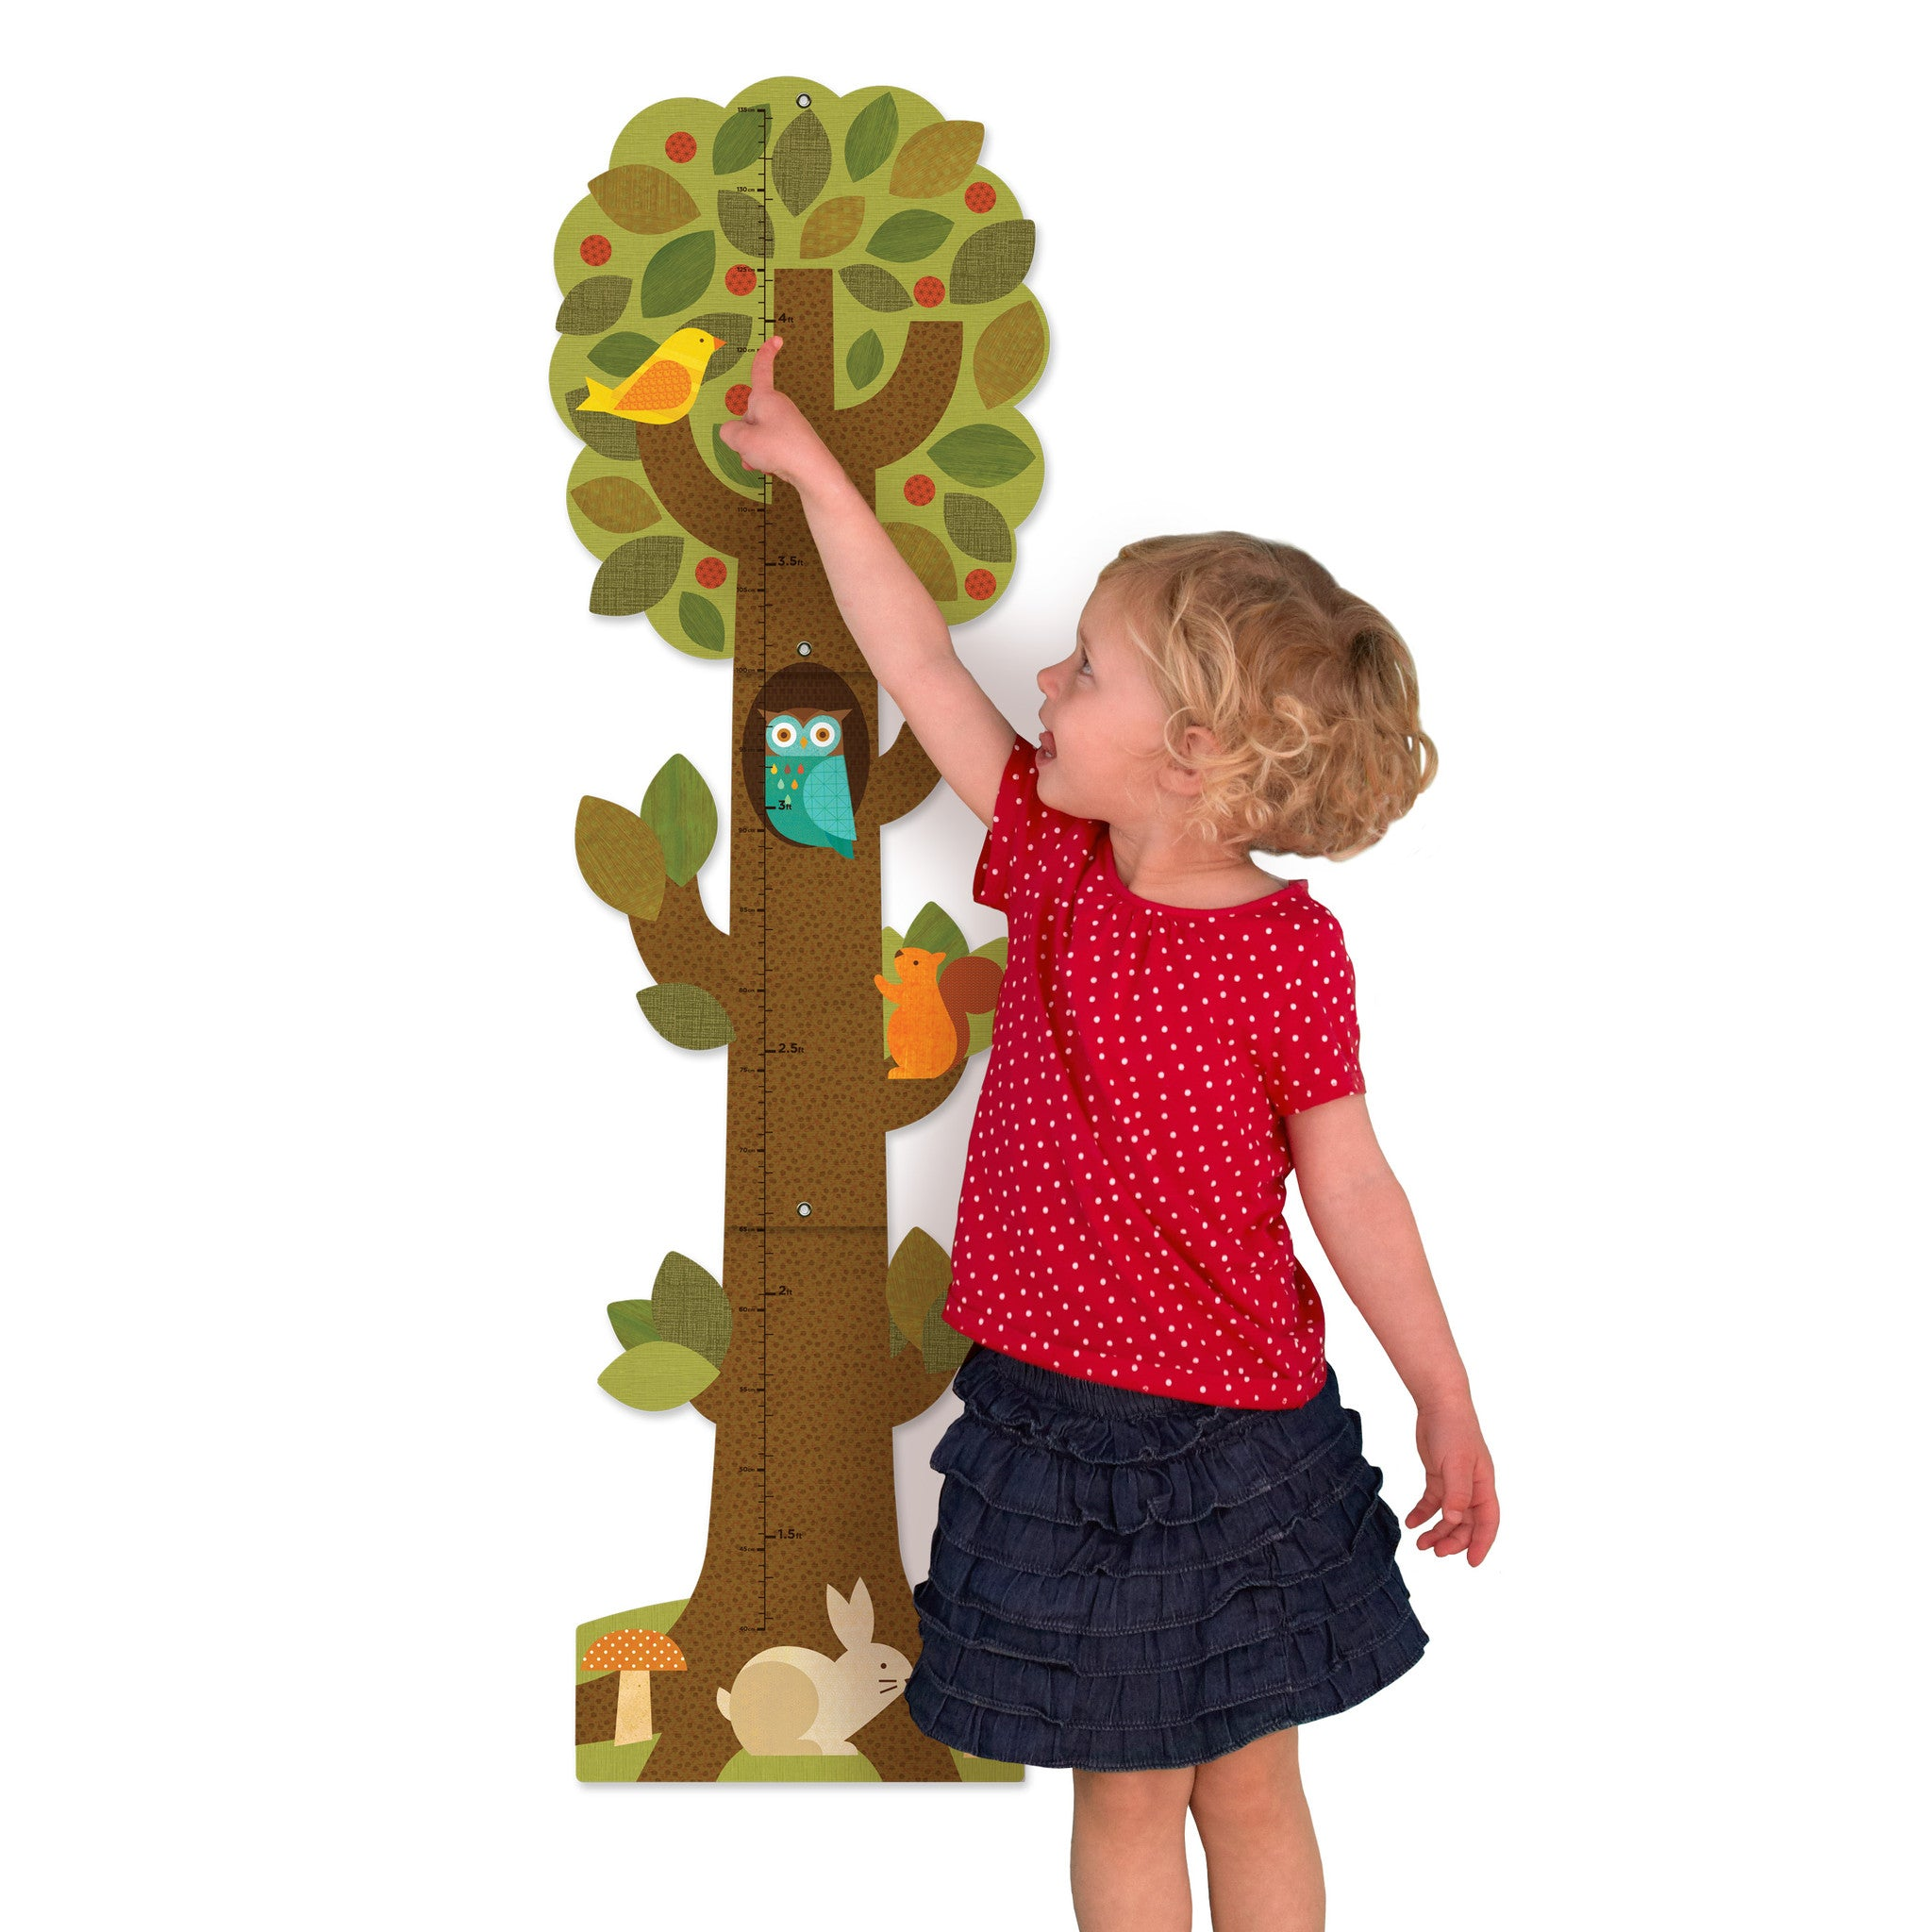 Petit Collage Growth Chart Tree Friends Good For Kids